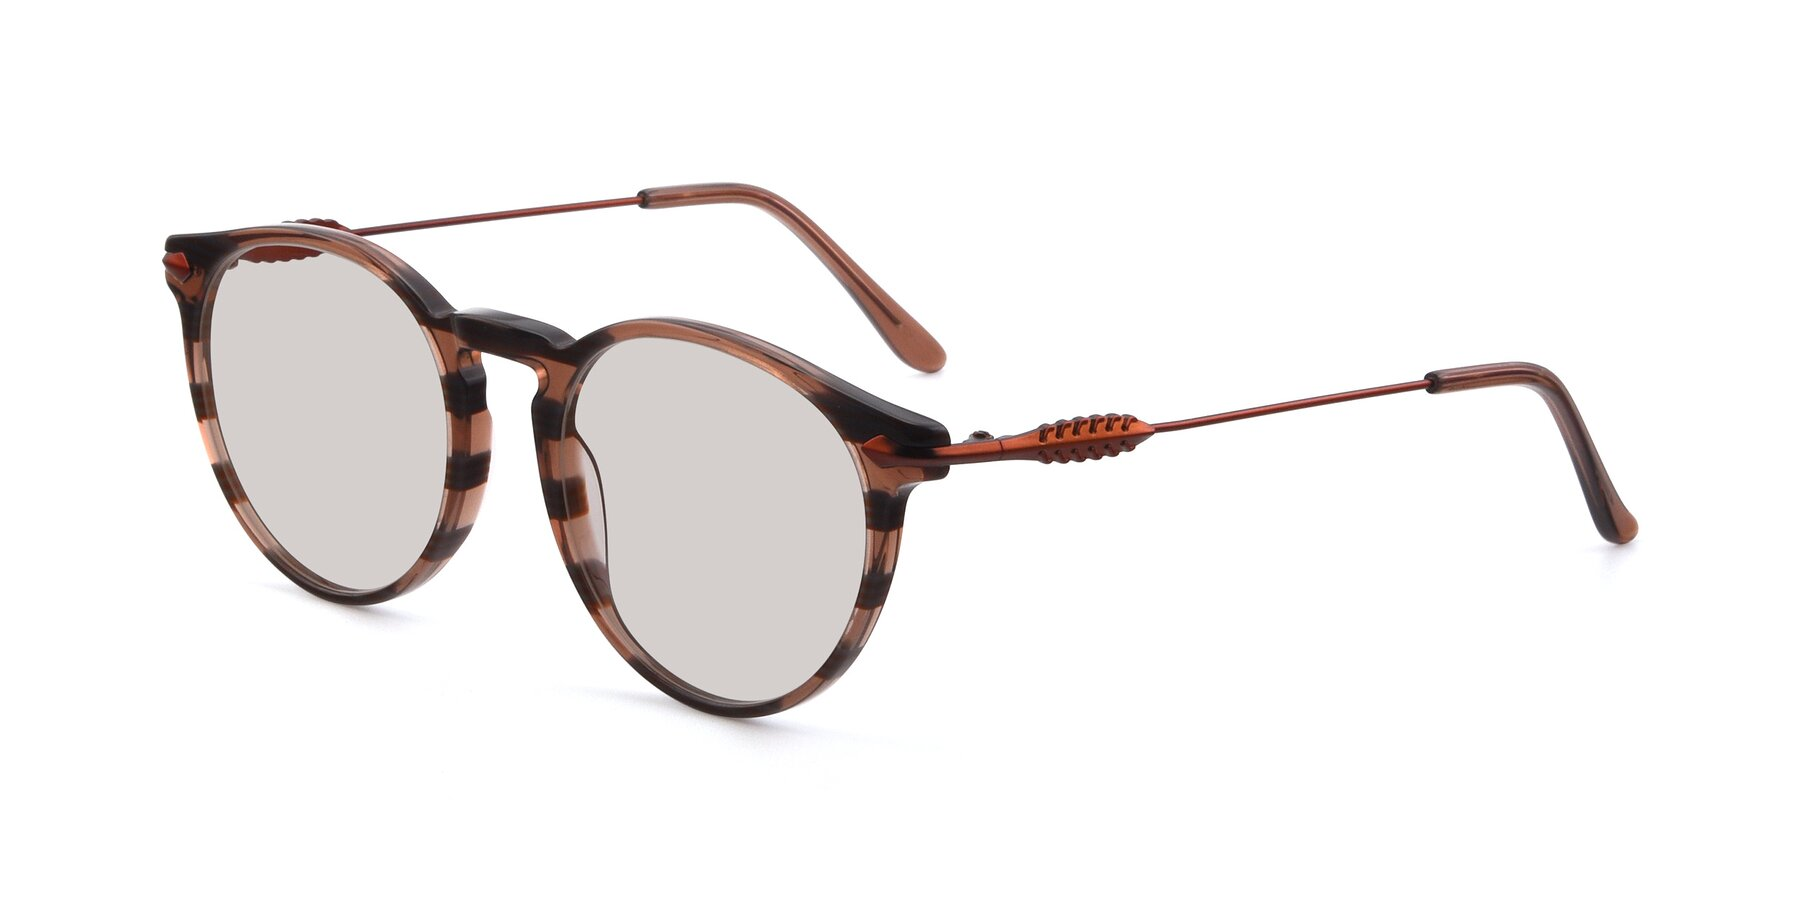 Angle of 17660 in Stripe Brown with Light Brown Tinted Lenses